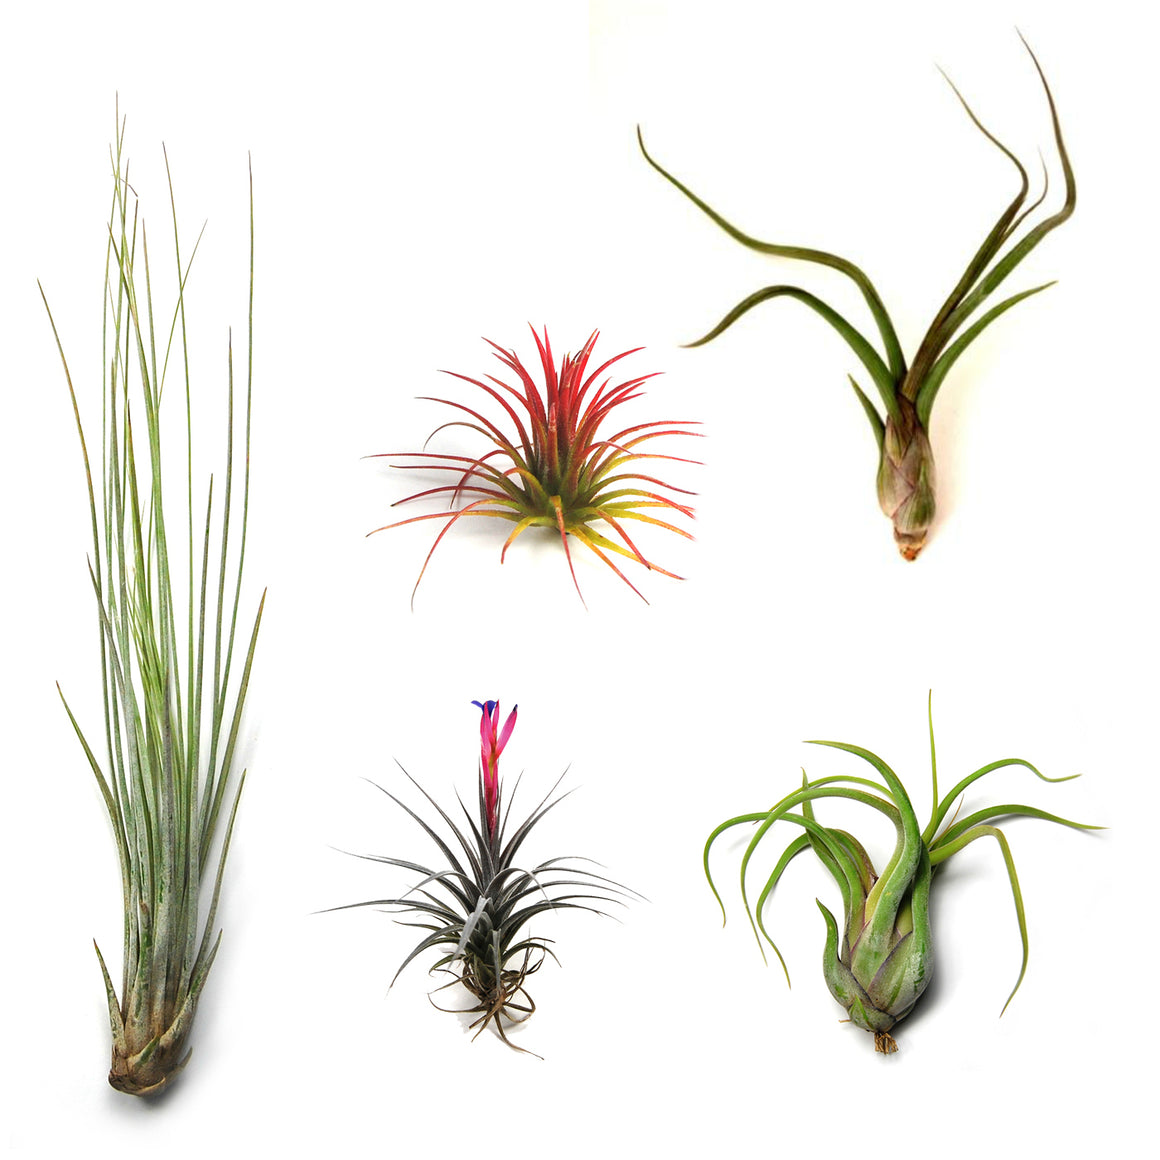 SALE - The Yucatan Collection - Set of 10 or 20 Air Plants - 50%